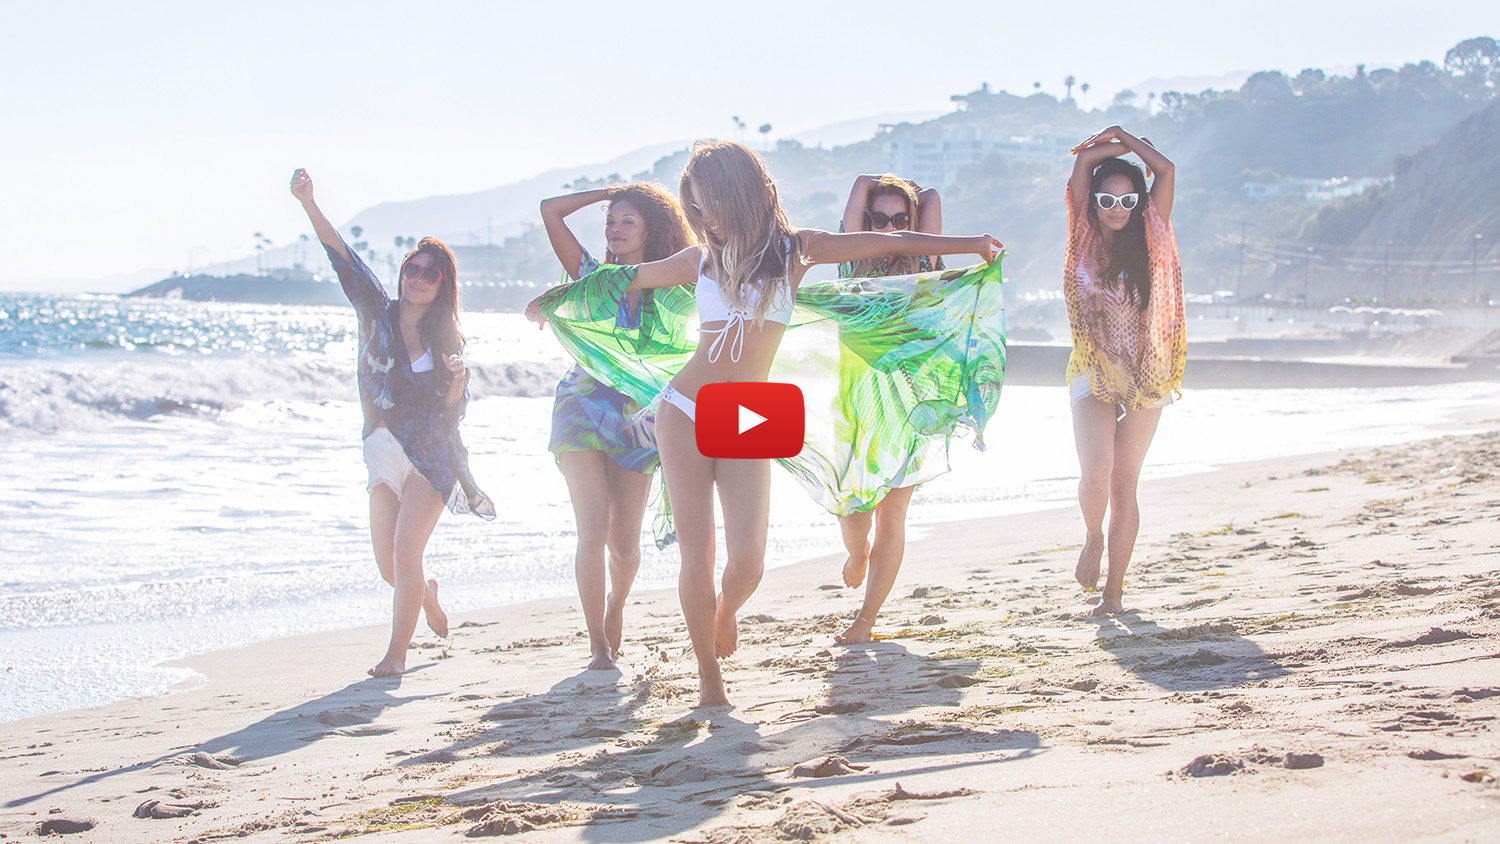 Jessi Malay - Summer Love (Music Video)